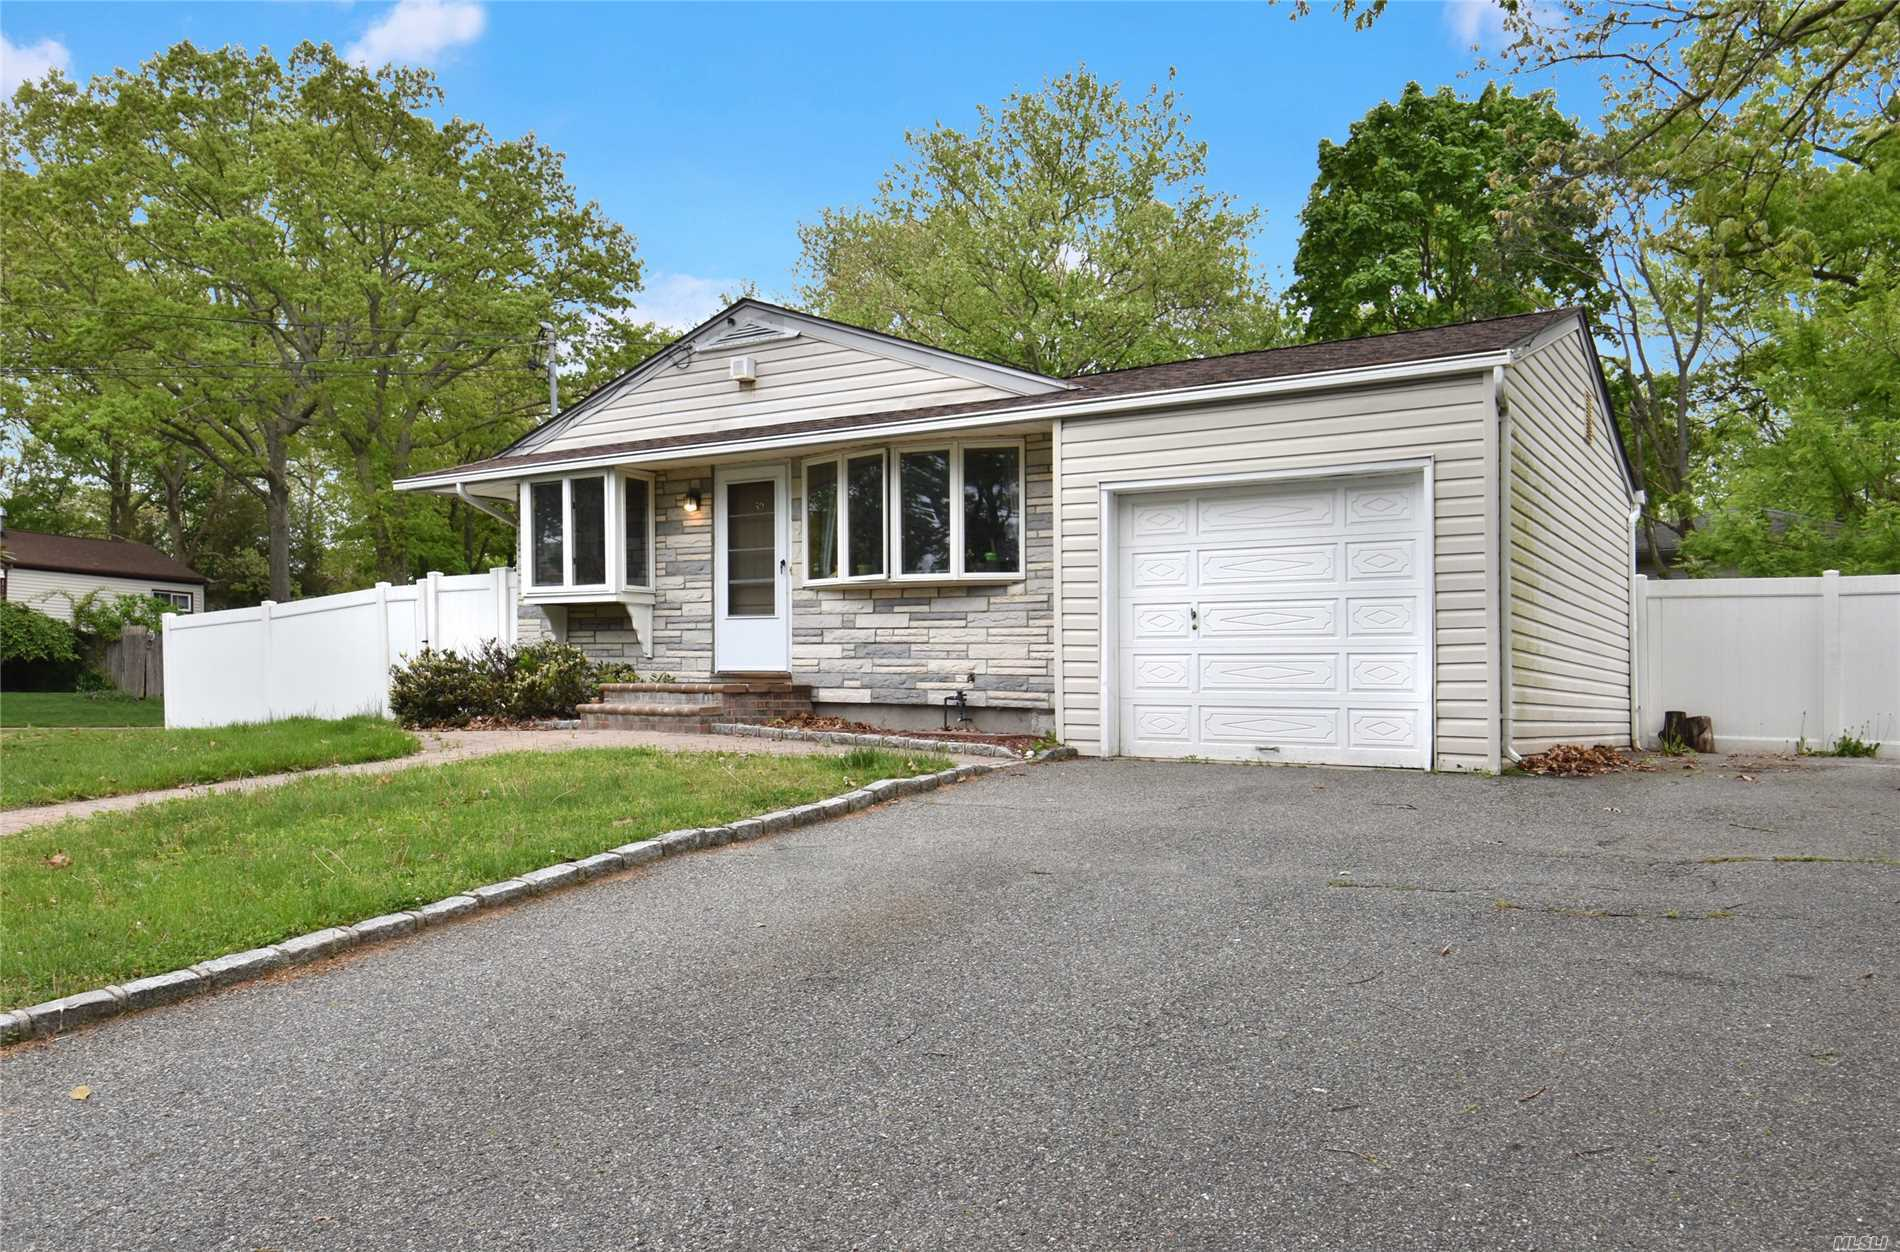 Garage For Sale Long Island 39 Lantern St Huntington Ny Mls 3024515 Long Island Homes